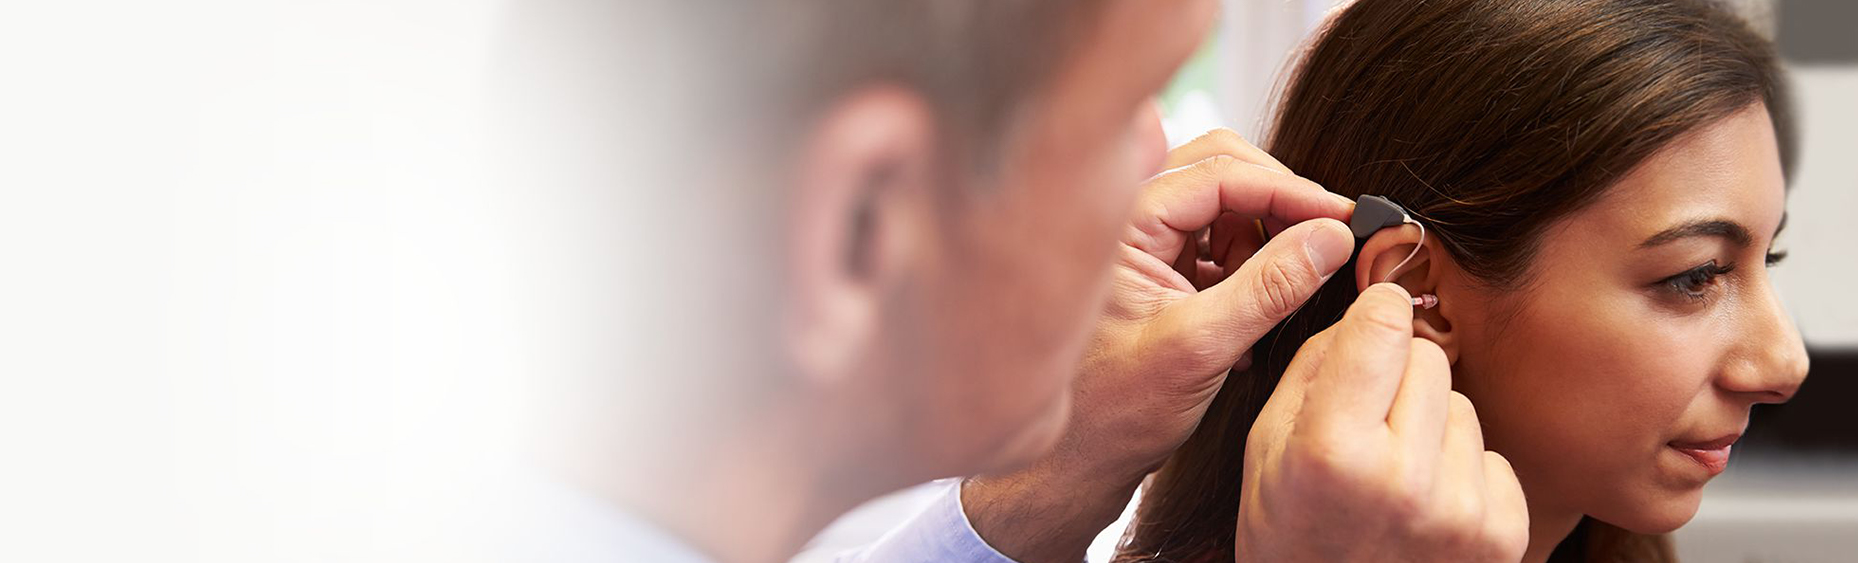 doctor placing hearing aid in woman's ear